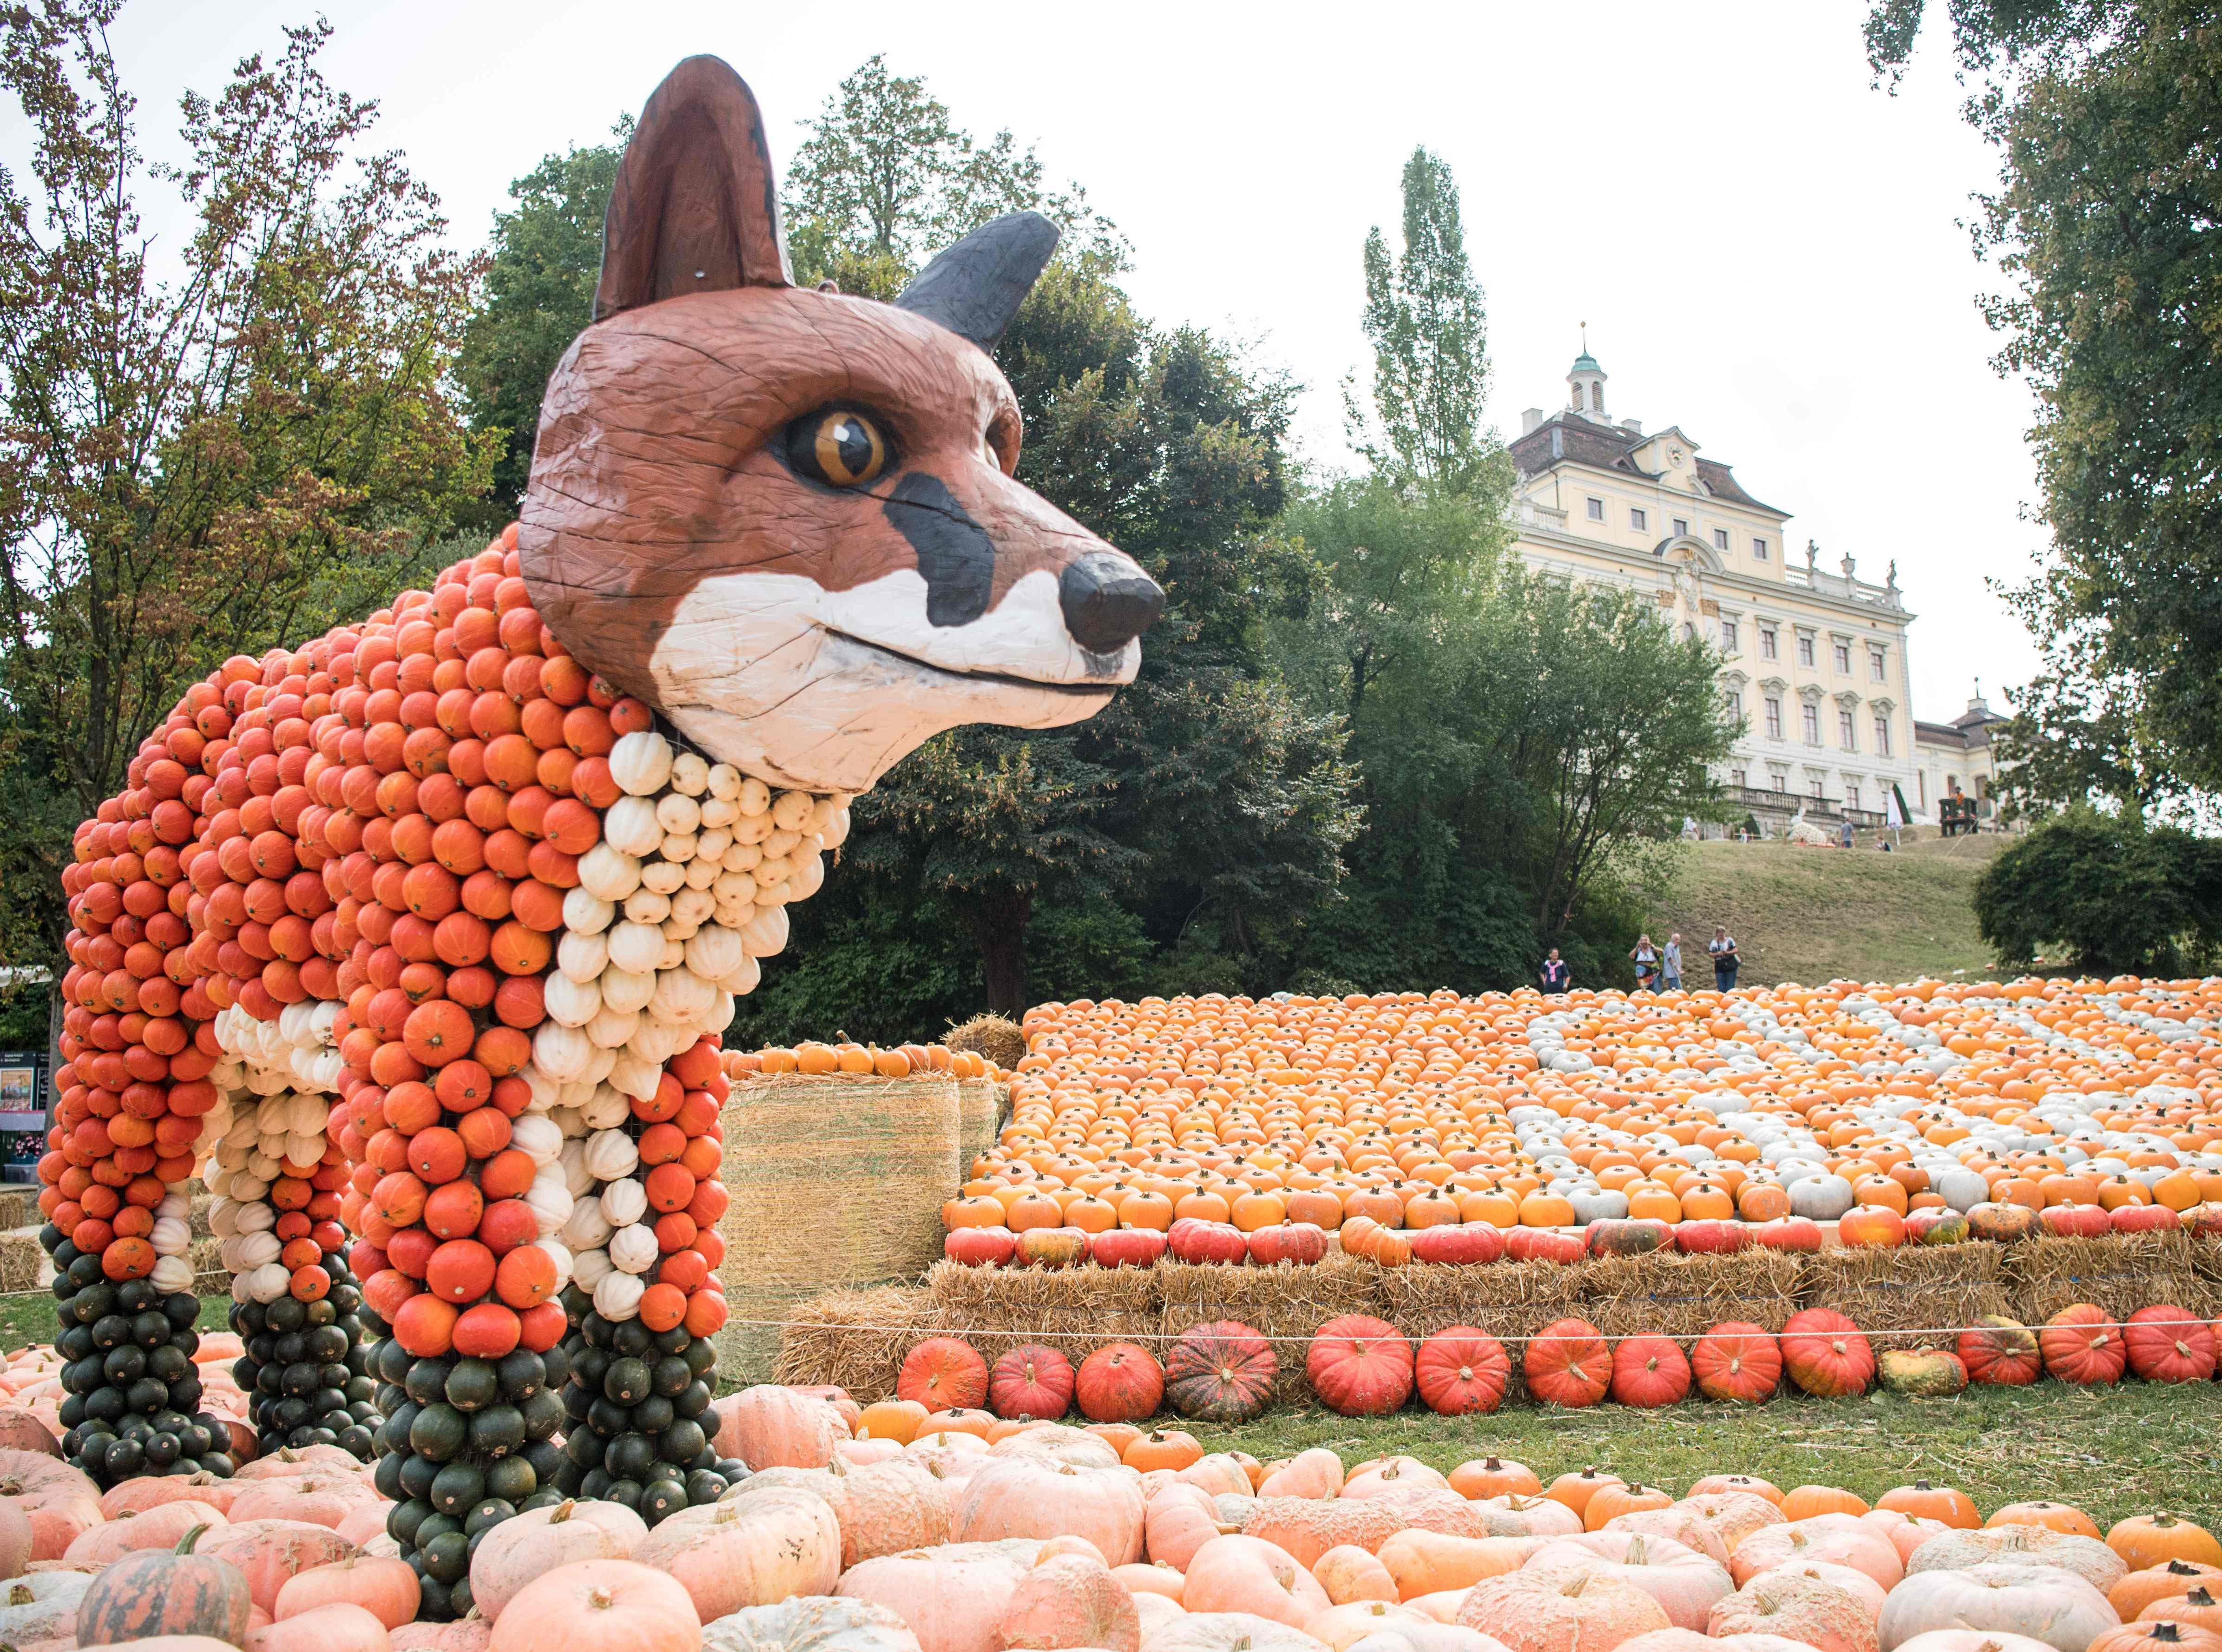 A fox sculpture made of pumpkins on display during the opening of a pumpkin exhibition in Ludwigsburg, Germany on August 30, 2018. More than 450,000 pumpkins were used to create an artificial world with animal sculptures and forest scenery.